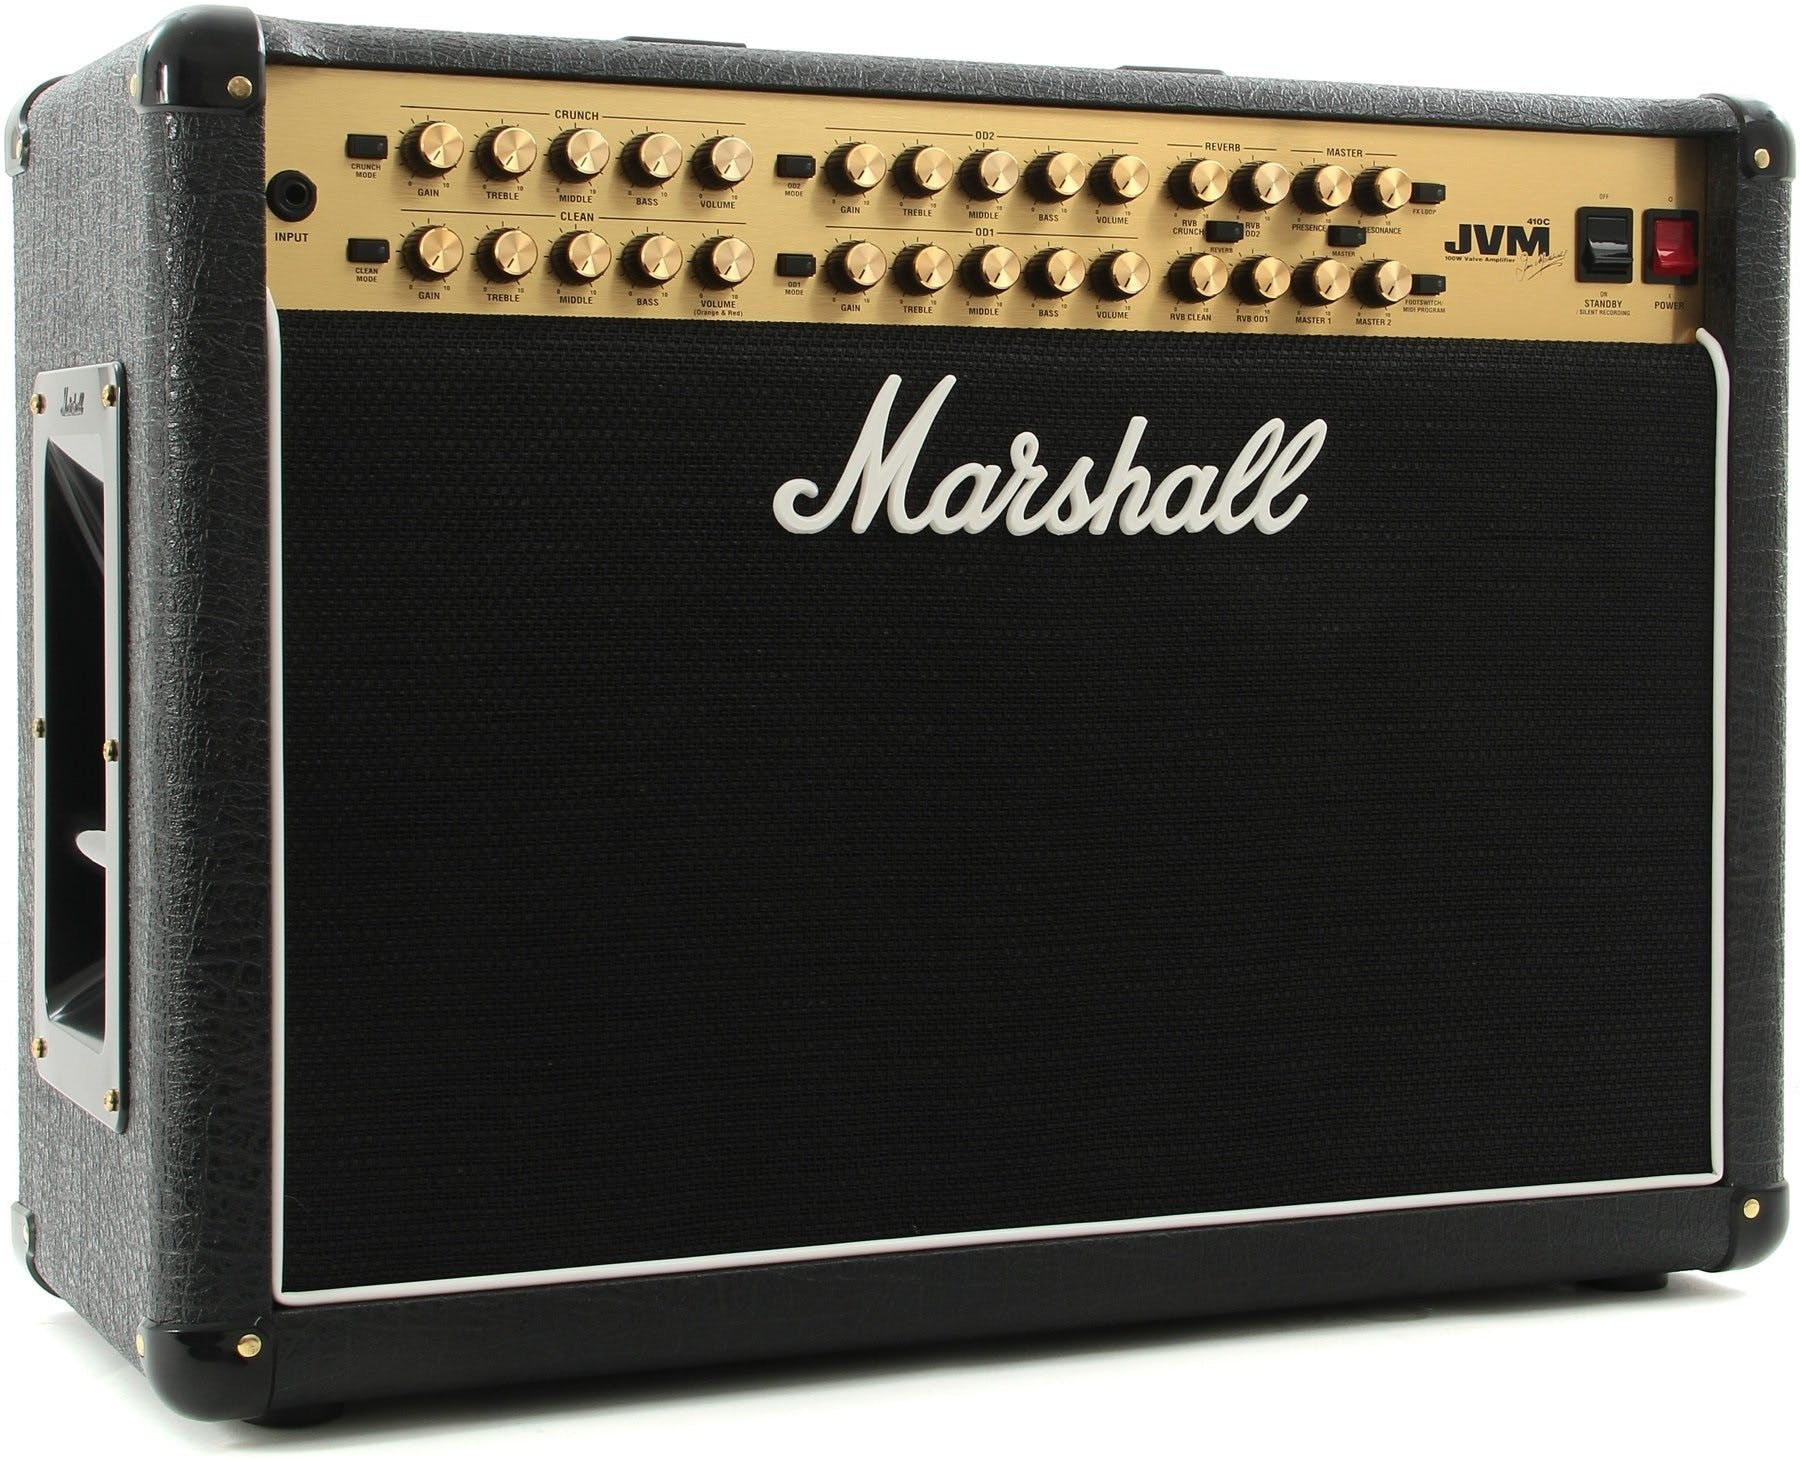 Whats The Best Marshall Amp Your Ultimate Guide From Andertons Make Original 100w Guitar Jvm410c 2x12 Combo